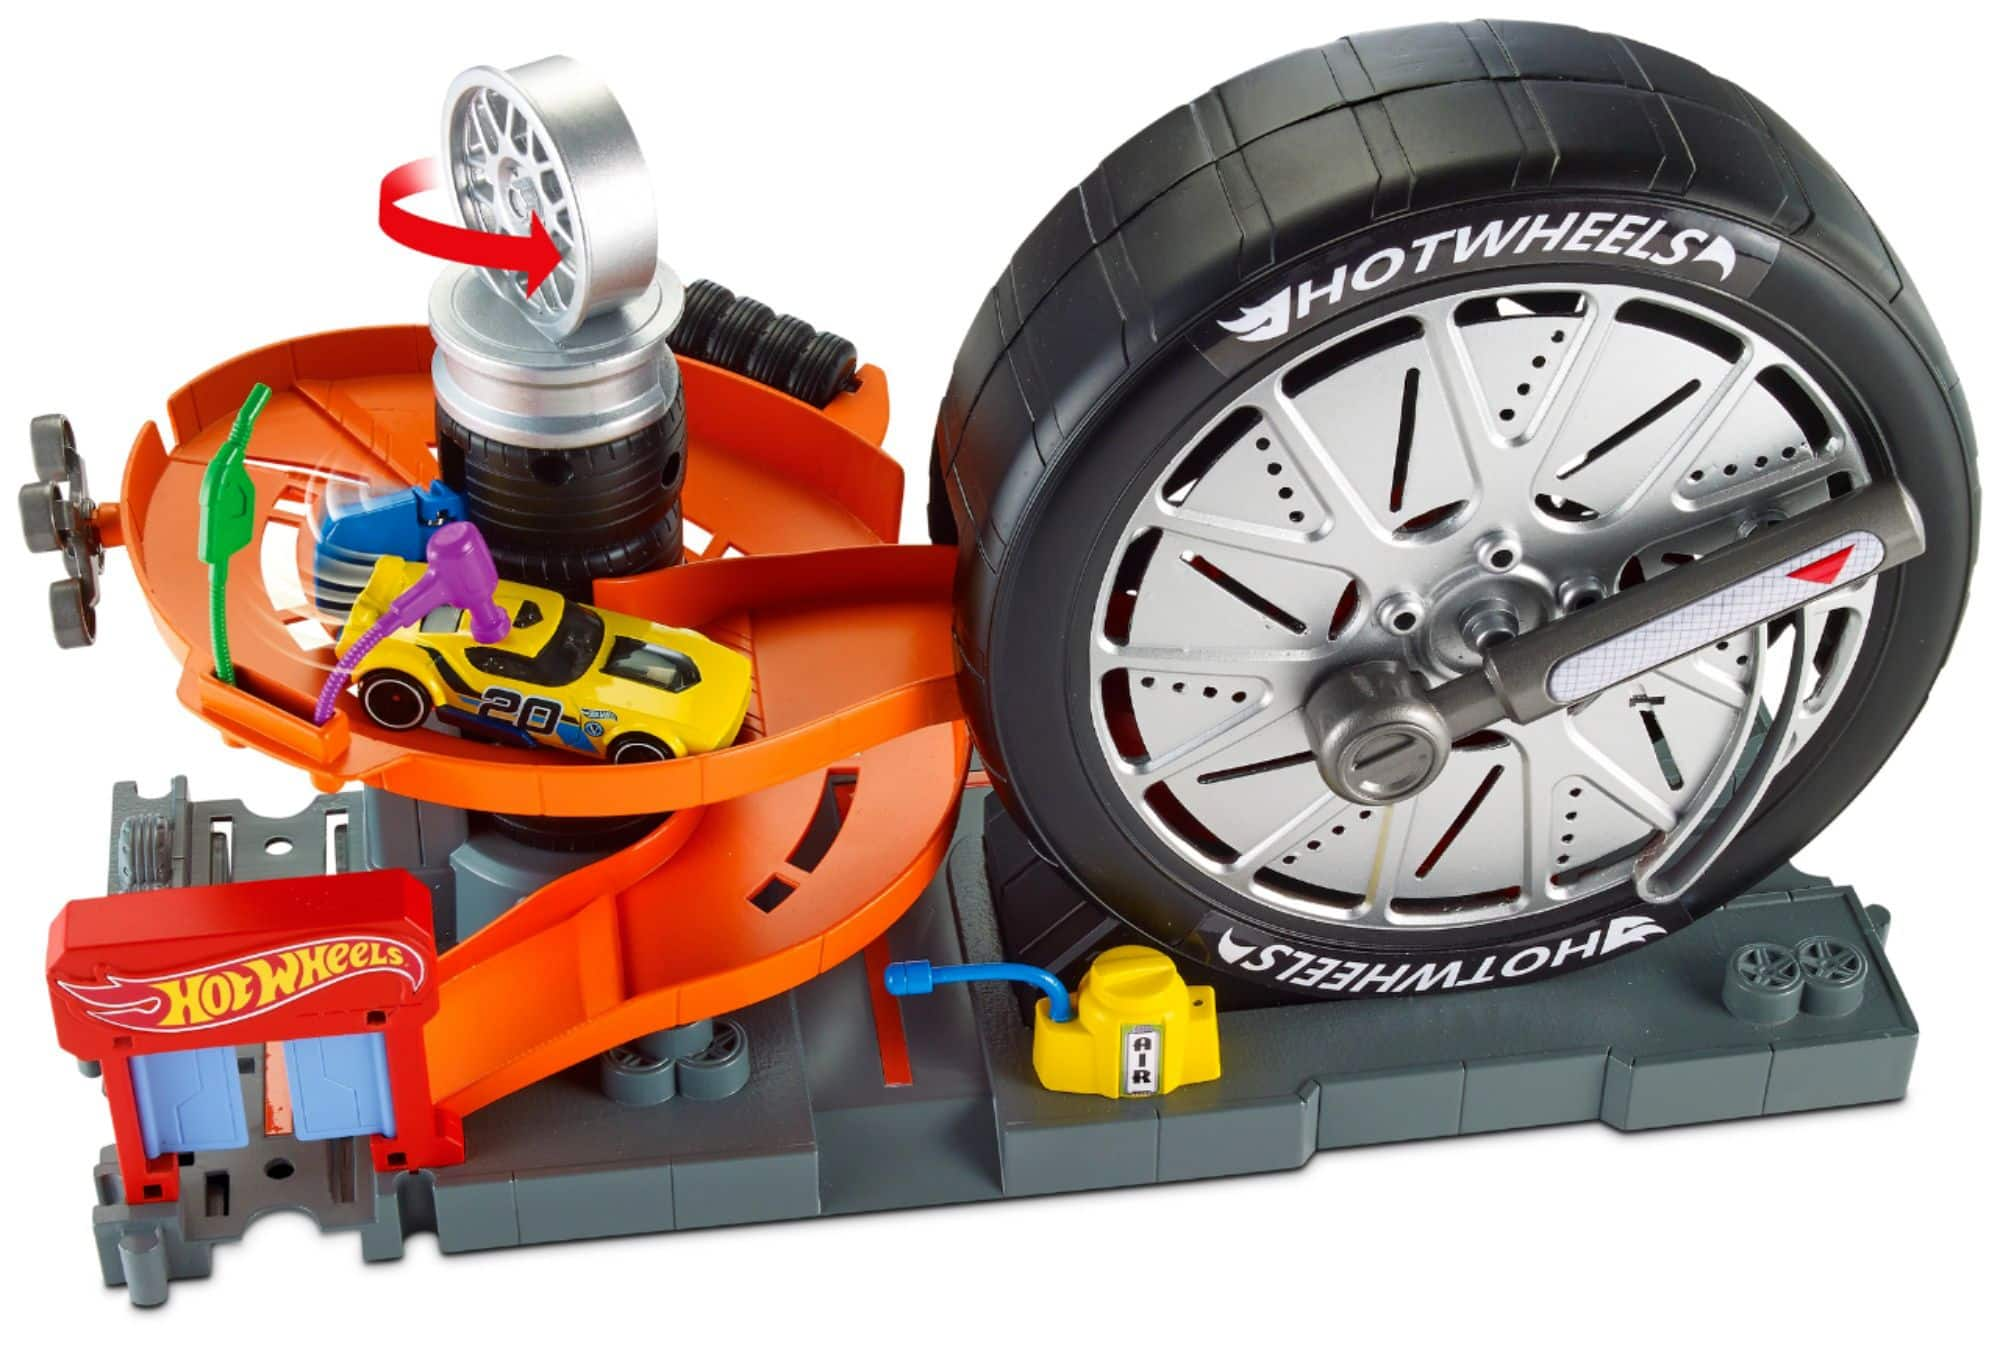 Hot Wheels City Super Play Set (Various Styles) $10.99 + Free Curbside Pickup